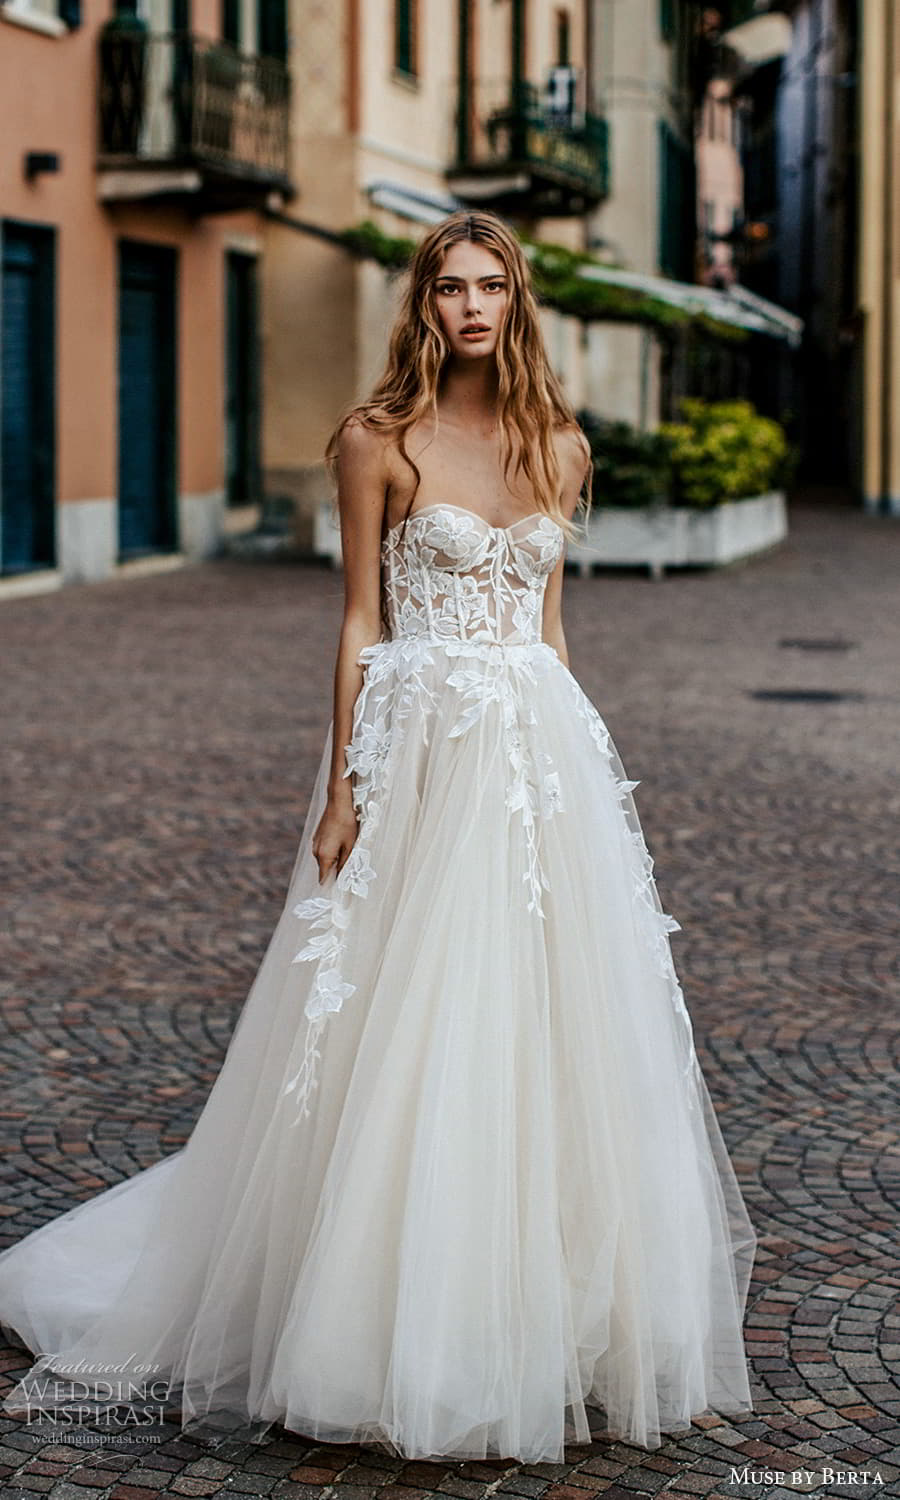 muse by berta spring 2022 bridal strapless sweetheart neckline fully embellished lace a line ball gown wedding dress chapel train (6) mv